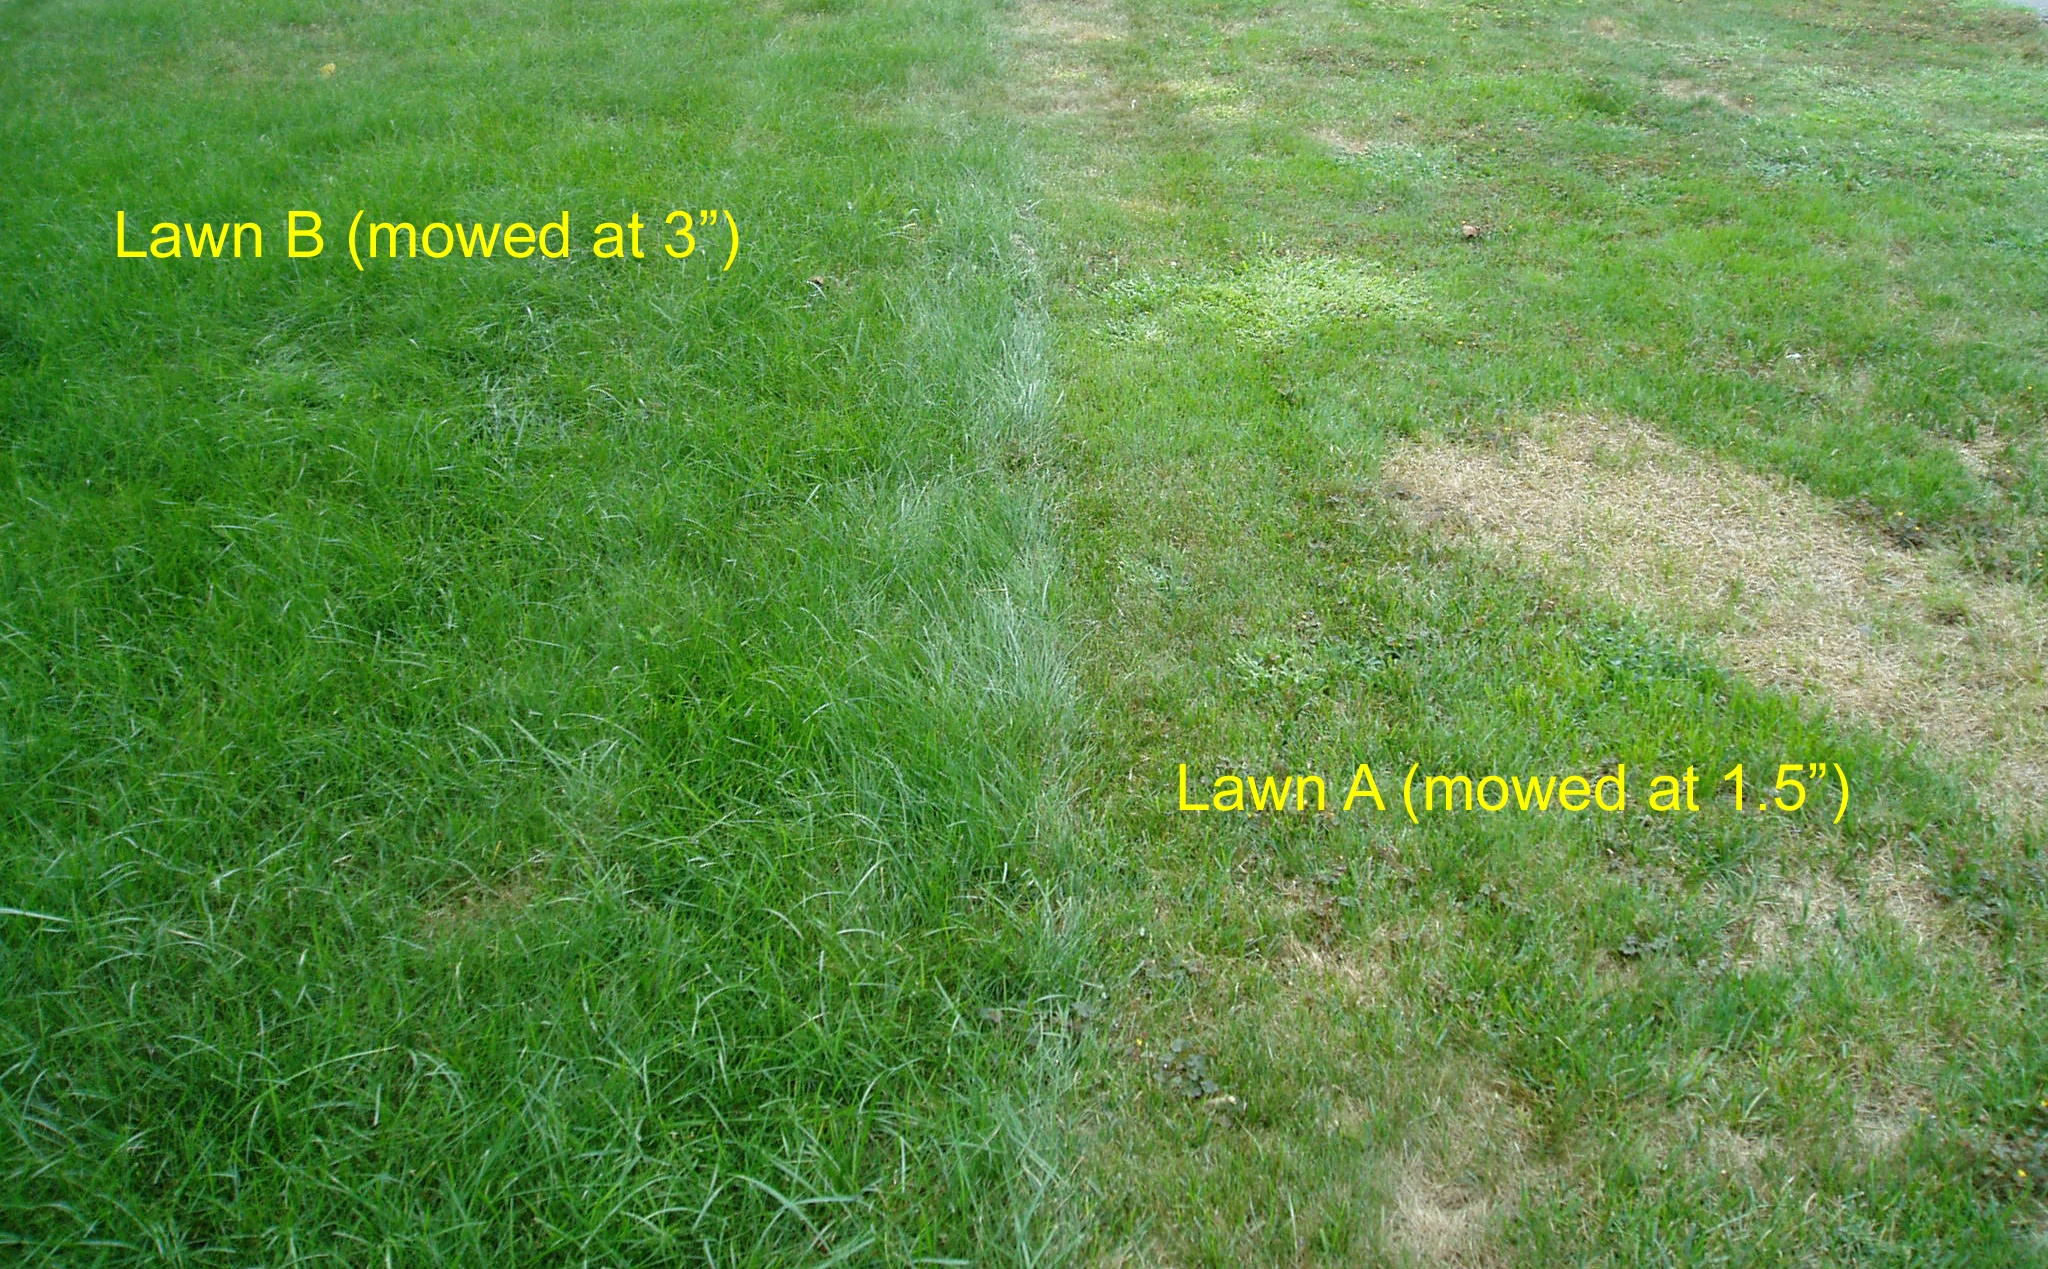 Lawn Mowing Comparison between Lawns Mowed High vs. Low